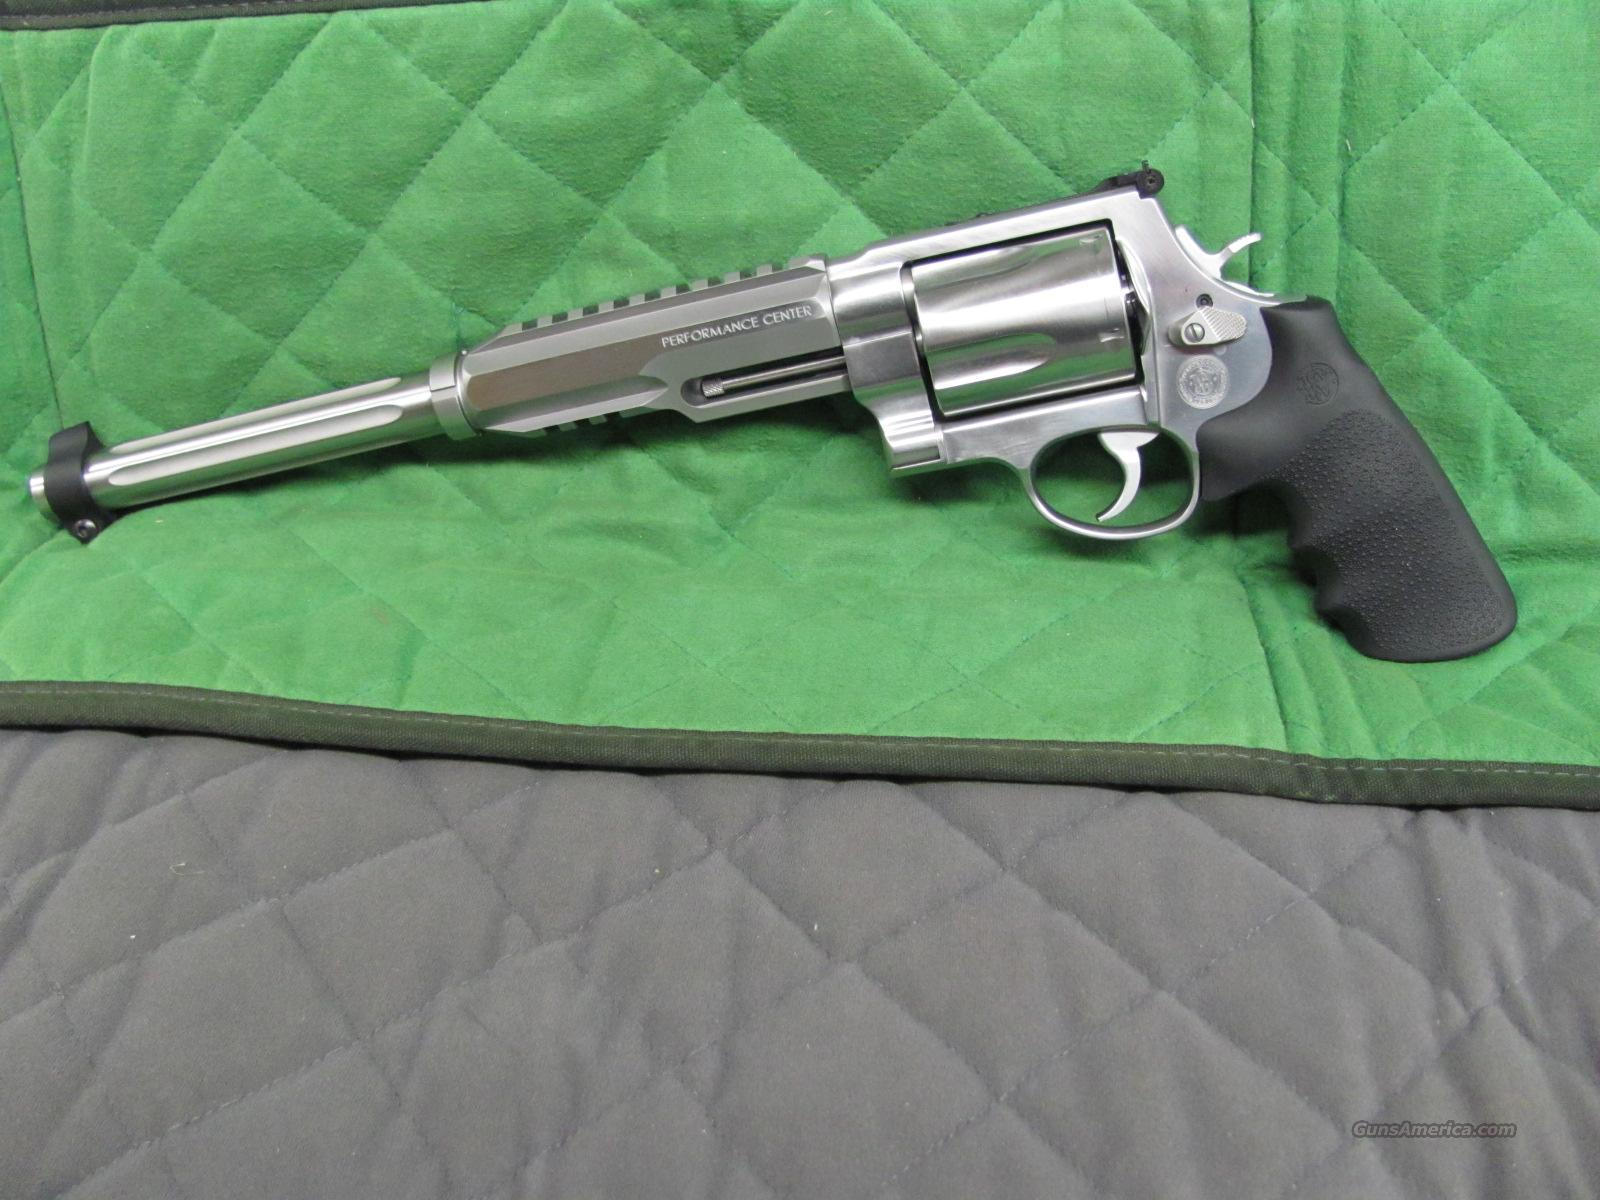 Smith & Wesson Model 460 XVR 12 Inch Performance Center  **NEW**  Guns > Pistols > Smith & Wesson Revolvers > Performance Center